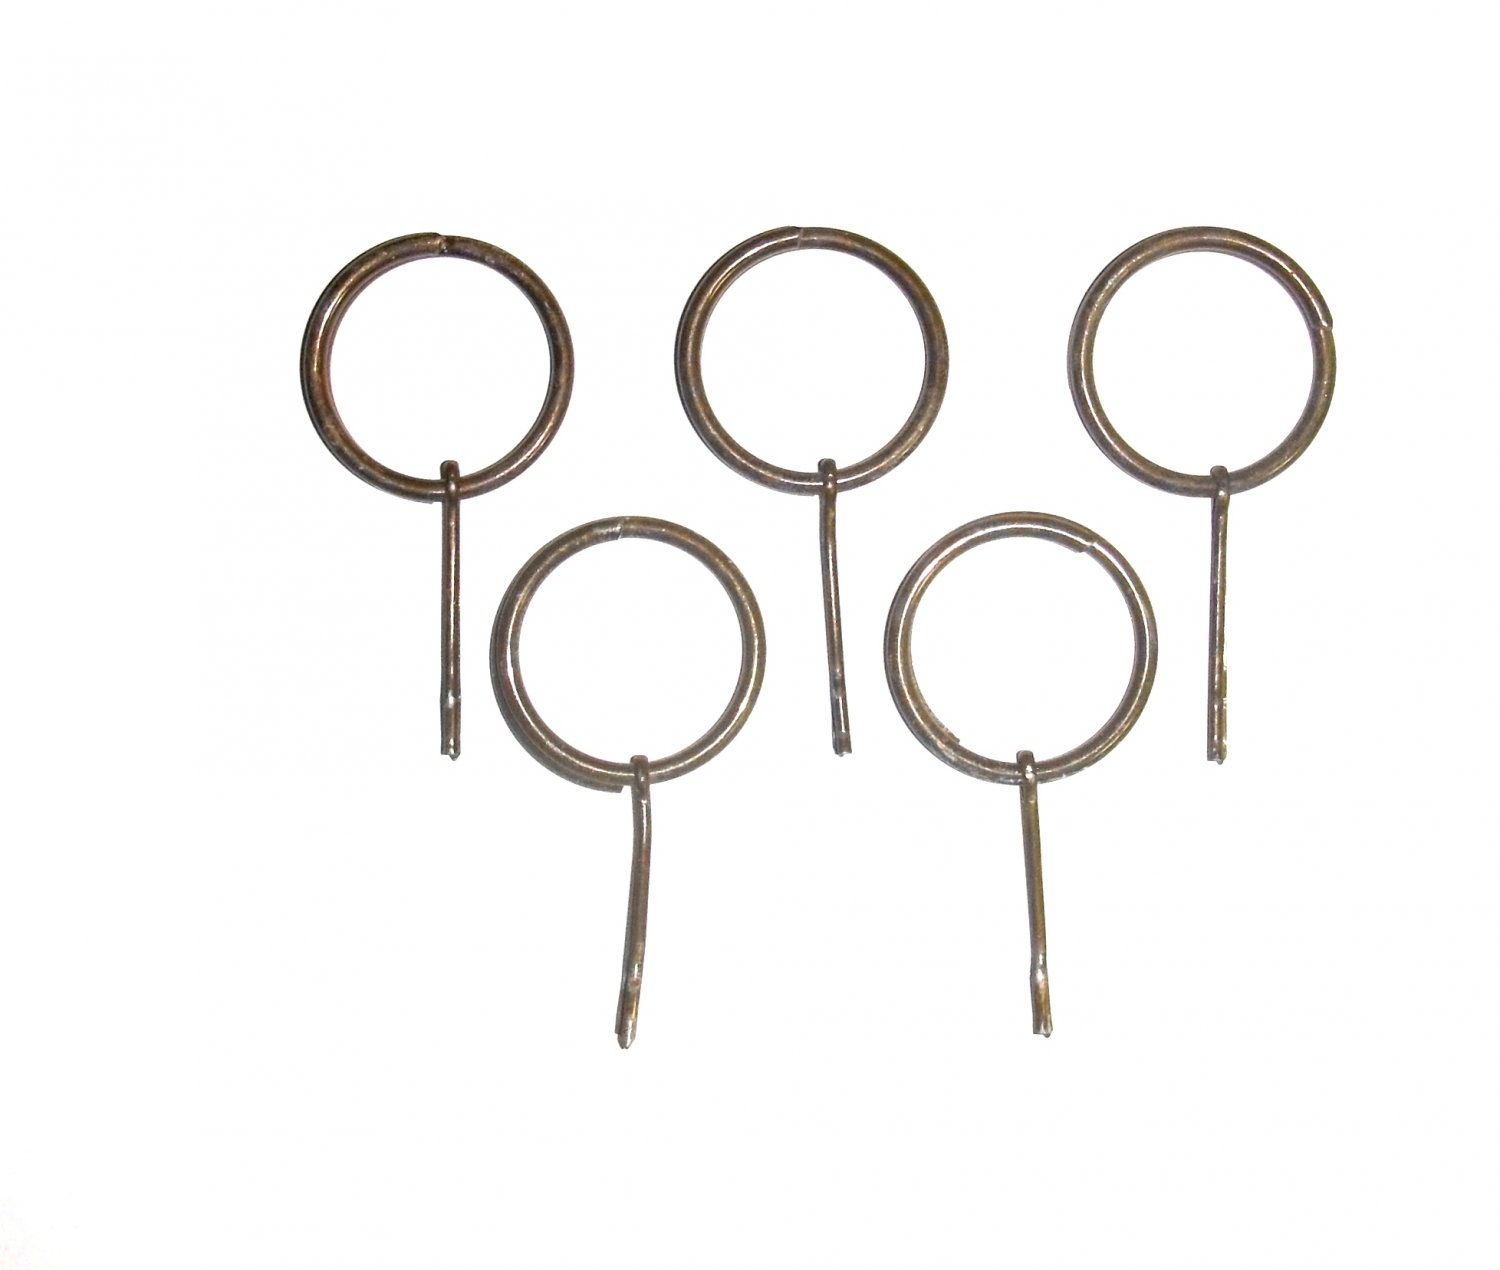 5 Hand Grenade Pins With Rings For Inert Dummy Hand